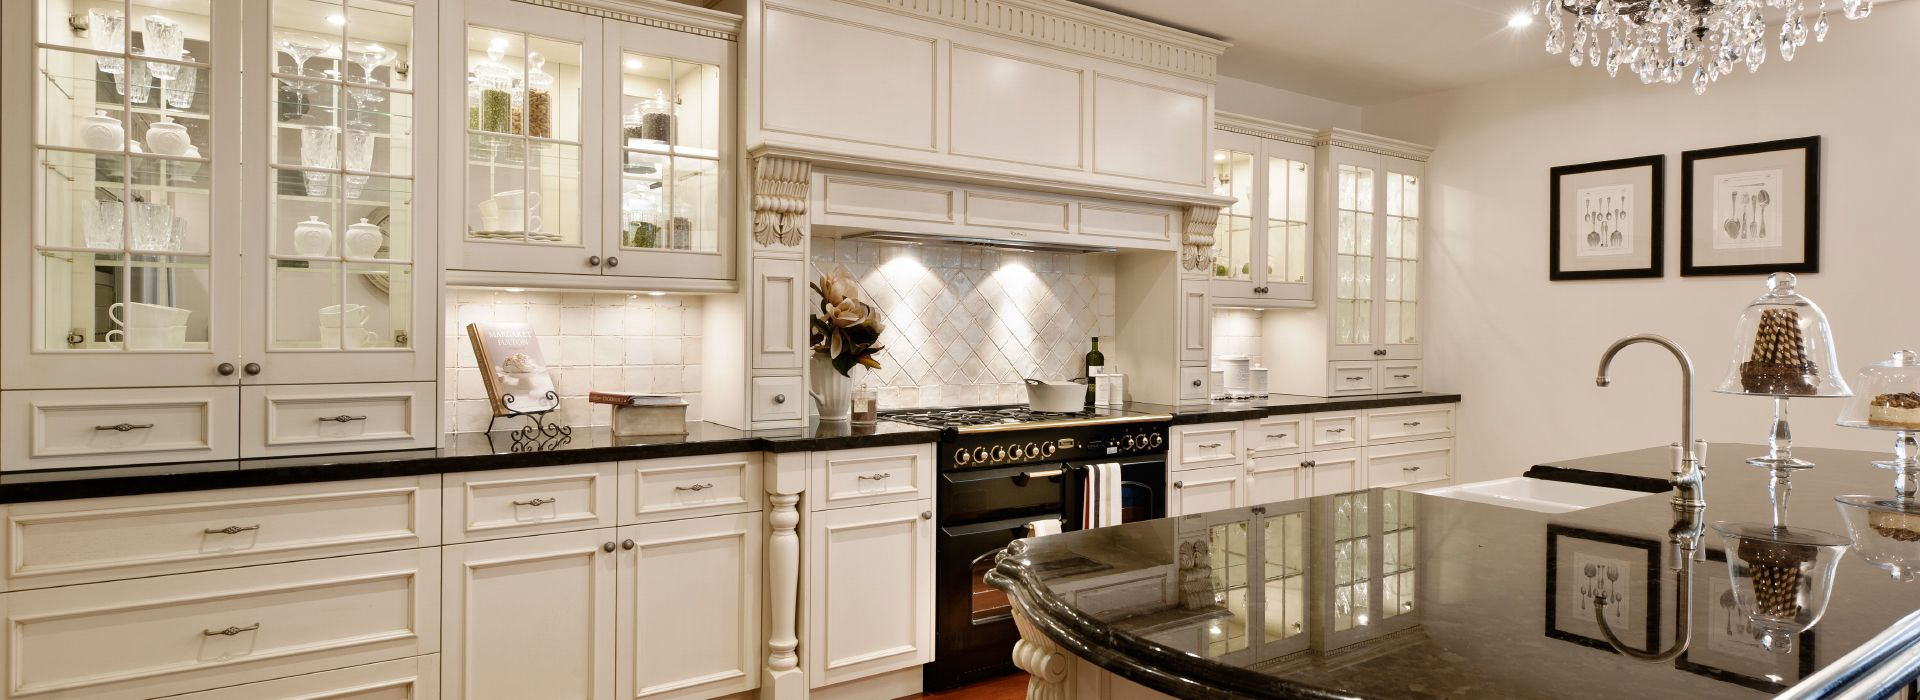 French Kitchen Designs Melbourne